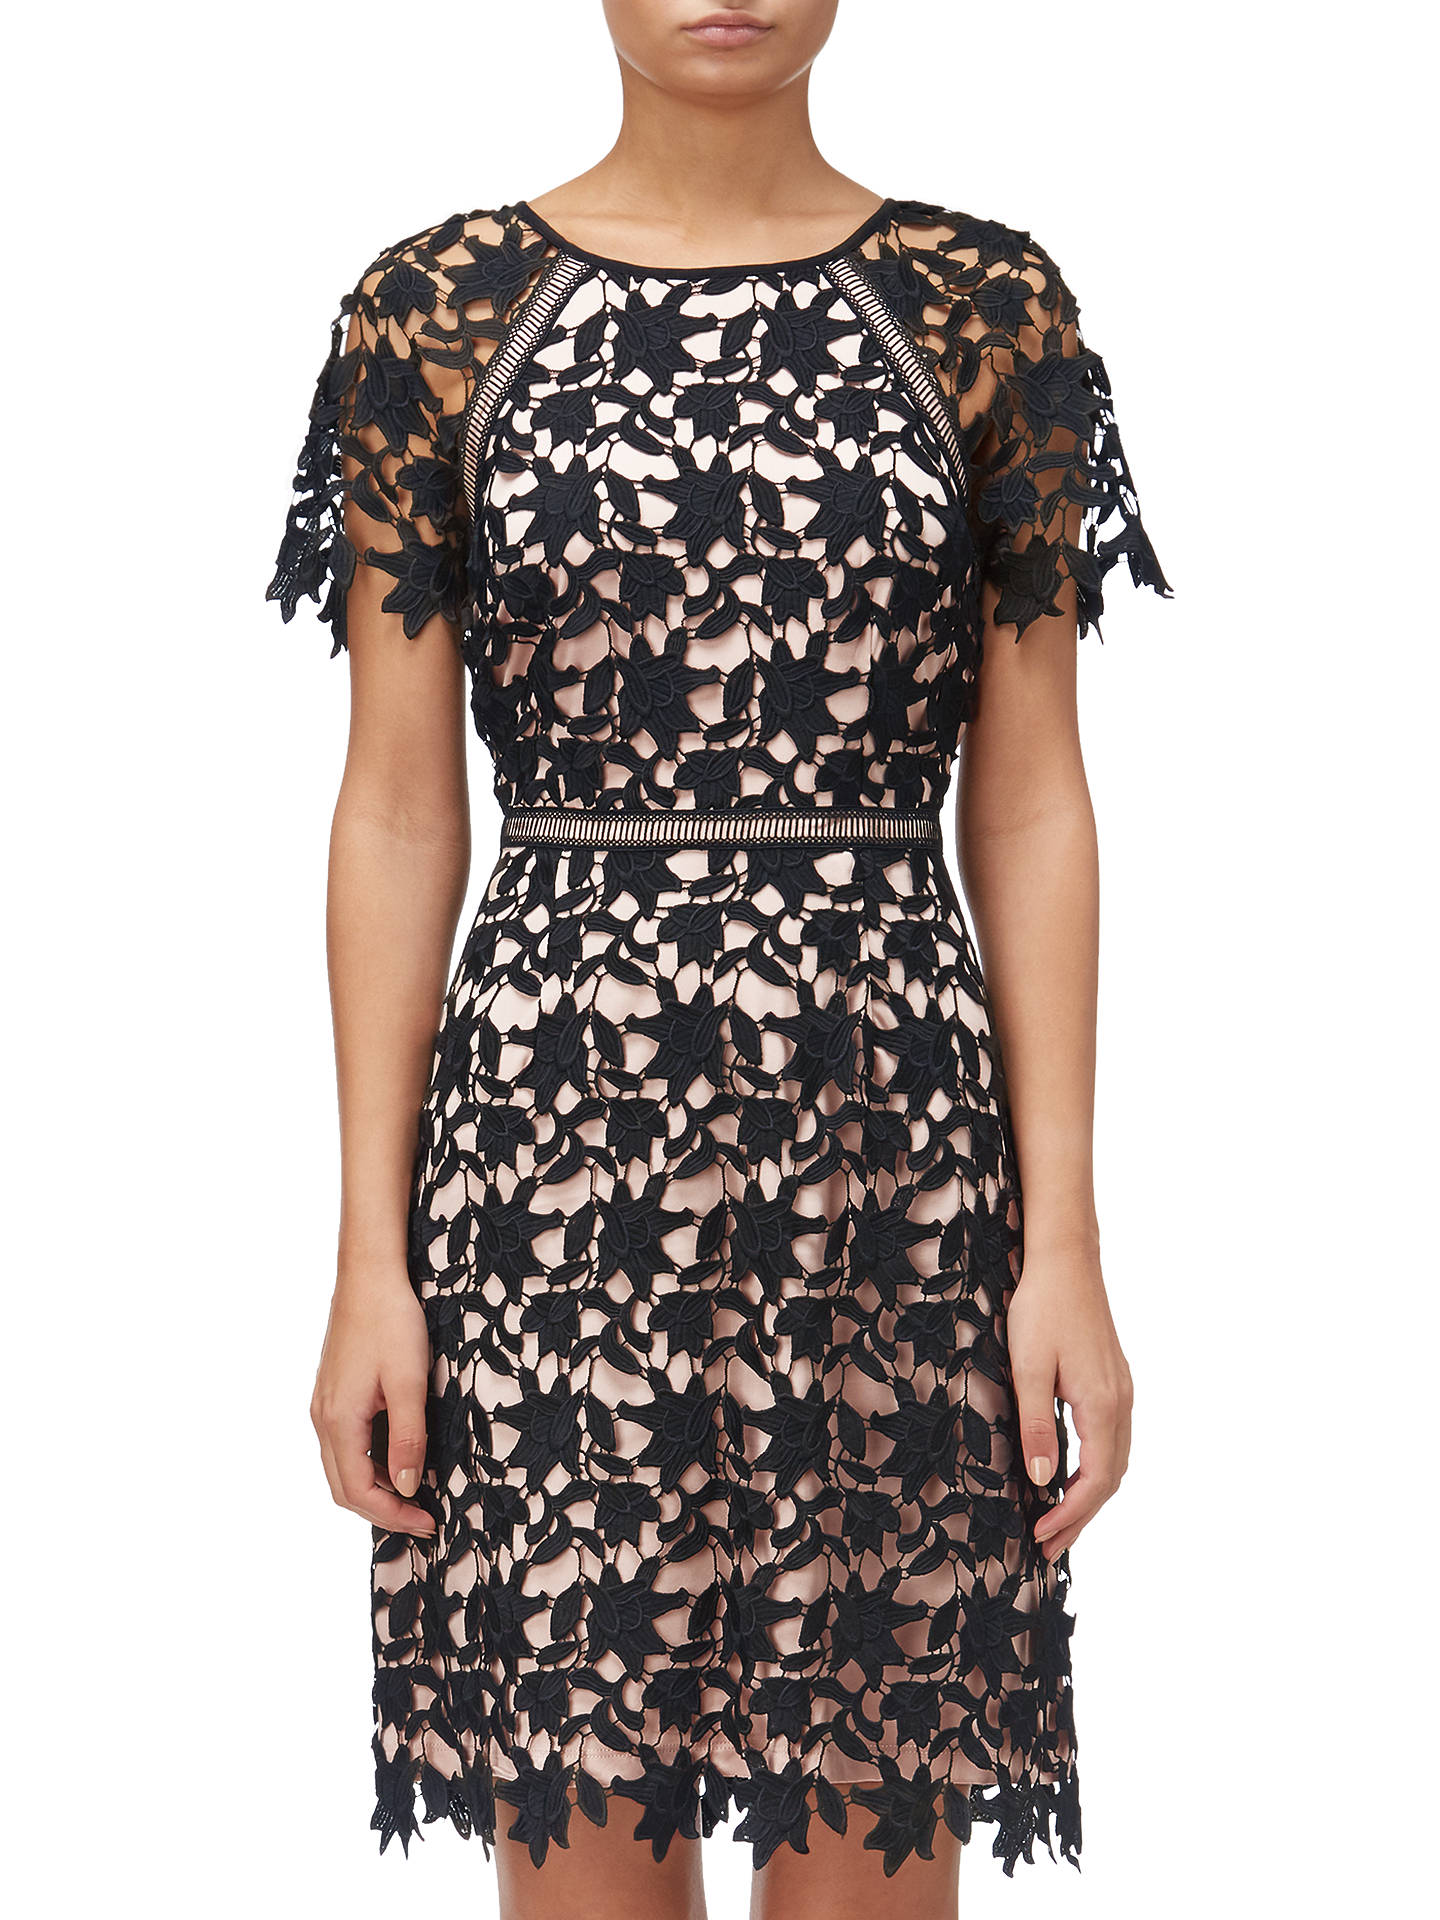 Adrianna Papell Ava Lace Trimmed A Line Dress Blackrose